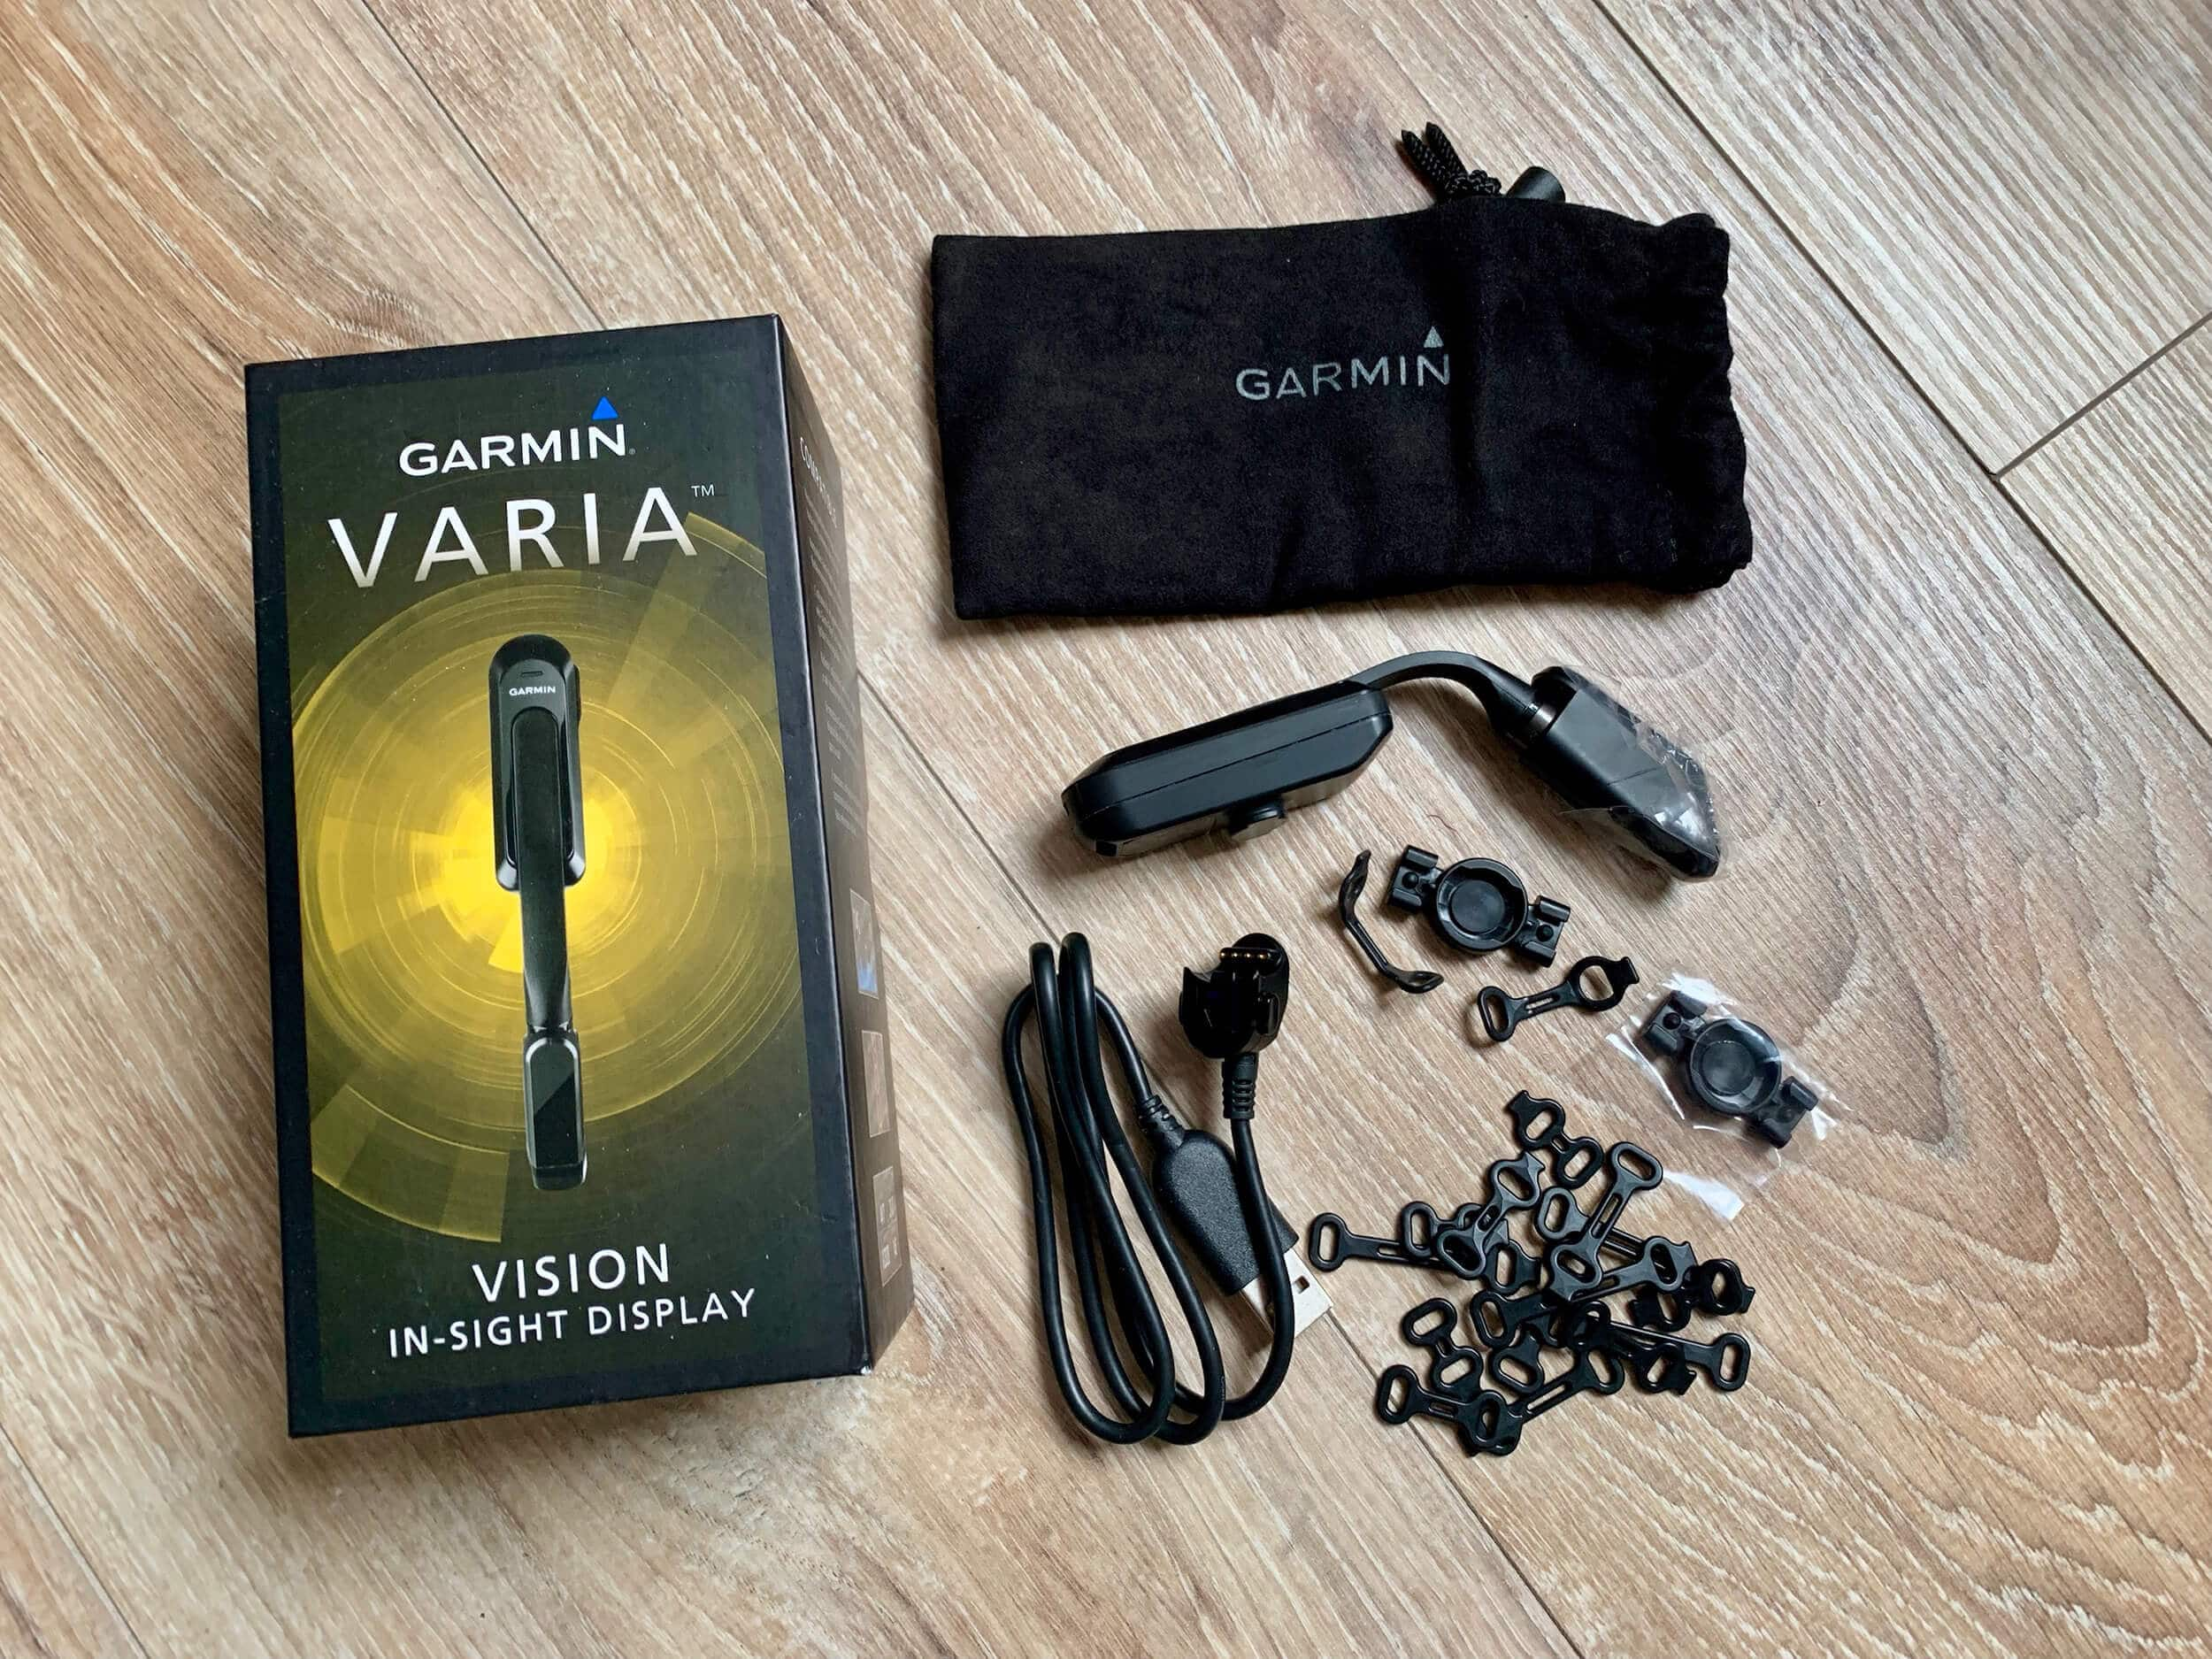 Garmin Varia Vision In-sight Display - Lieferumfang